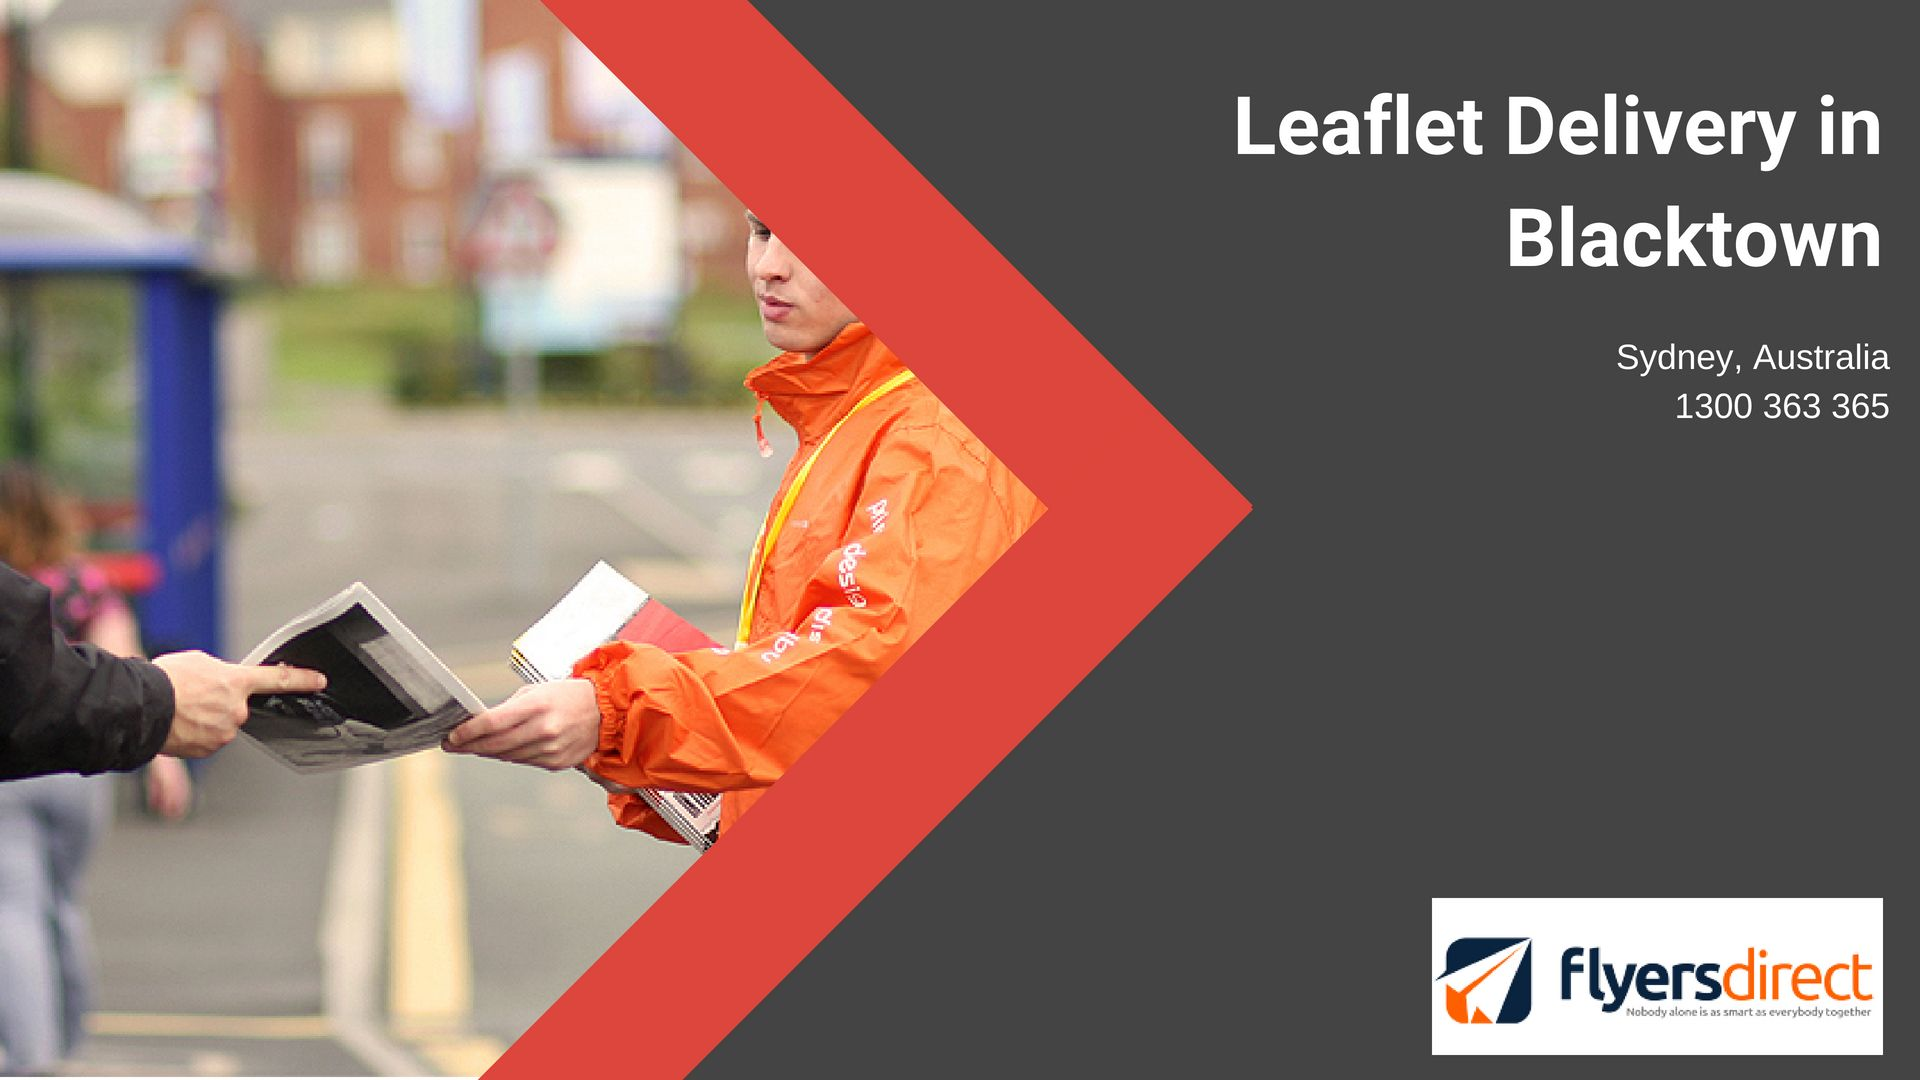 With A Plethora Of Benefits Associated With The Leaflet Delivery